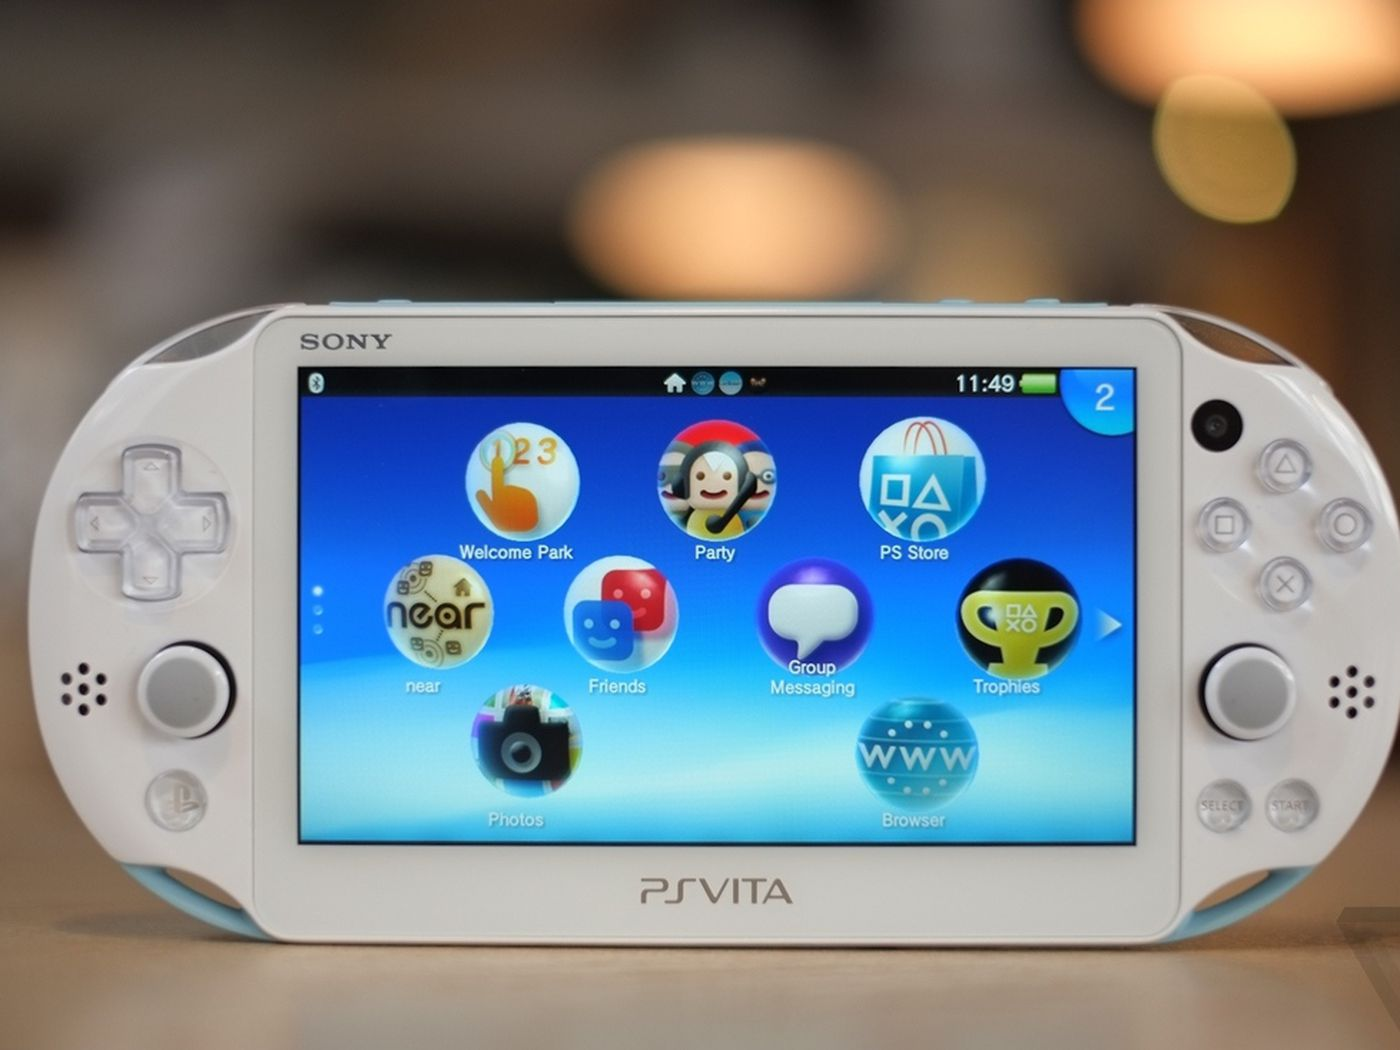 Five years later, PlayStation Vita is still my favorite